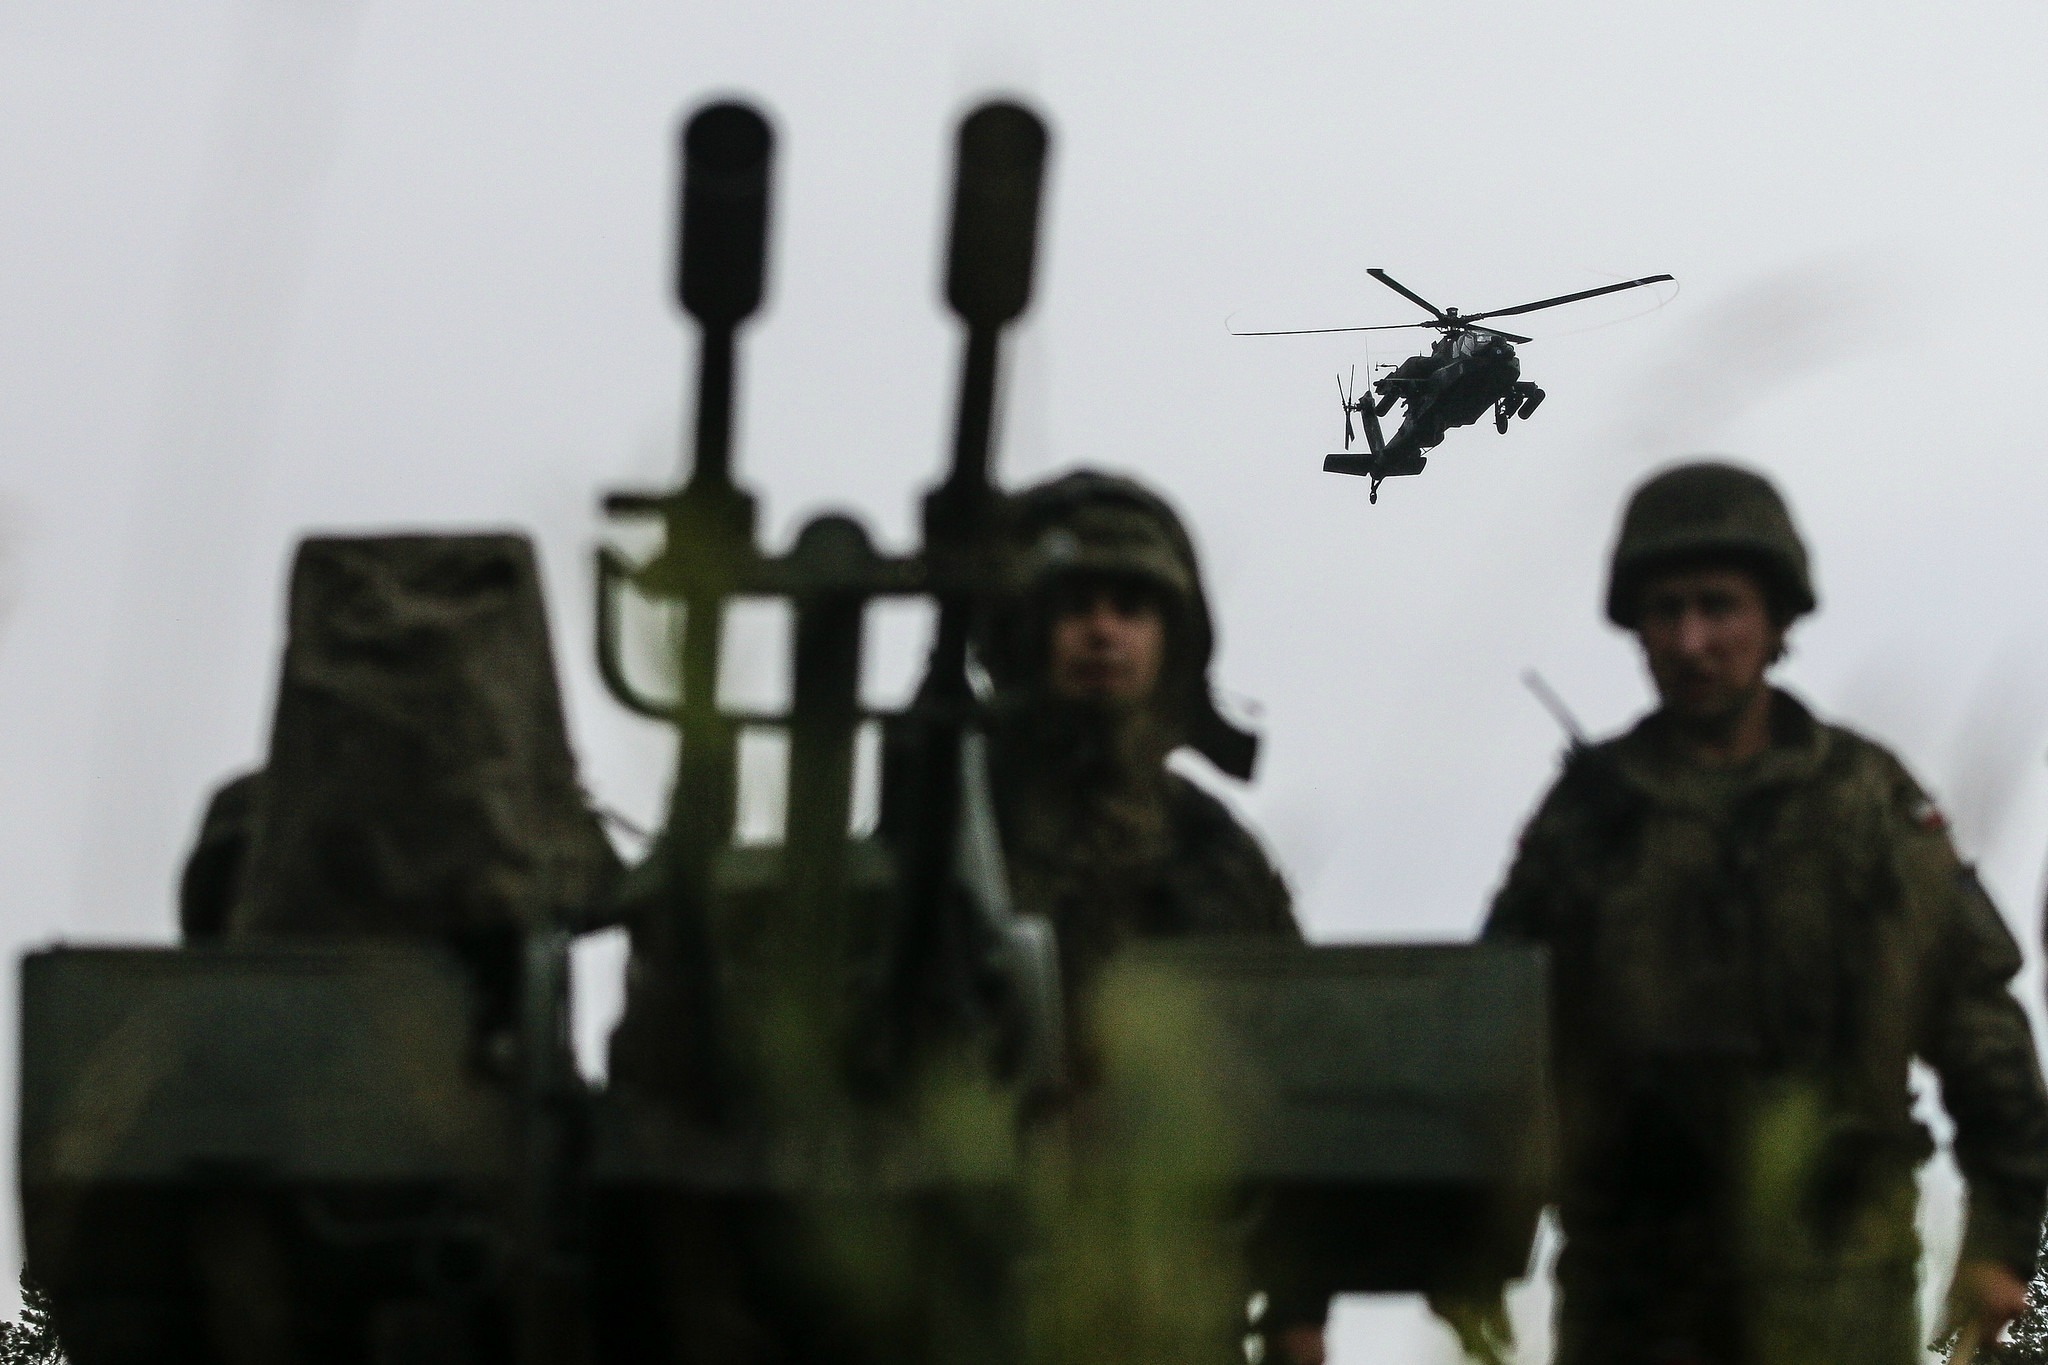 Polish army soldiers with the 15th Mechanized Brigade, post security on a heavy machine gun while receiving aerial support from U.S. Army AH-64 Apache helicopters with Battle Group Poland, during a multinational training event for exercise Puma 2 with Battle Group Poland at Bemowo Piskie Training Area, Poland, June 14, 2018, as part of Saber Strike 18. This year's exercise, which runs from June 3-15, tests allies and partners from 19 countries on their ability work together to deter aggression in the region and improve each unit's ability to perform their designated mission. (U.S. Army photo by Spc. Hubert D. Delany III)